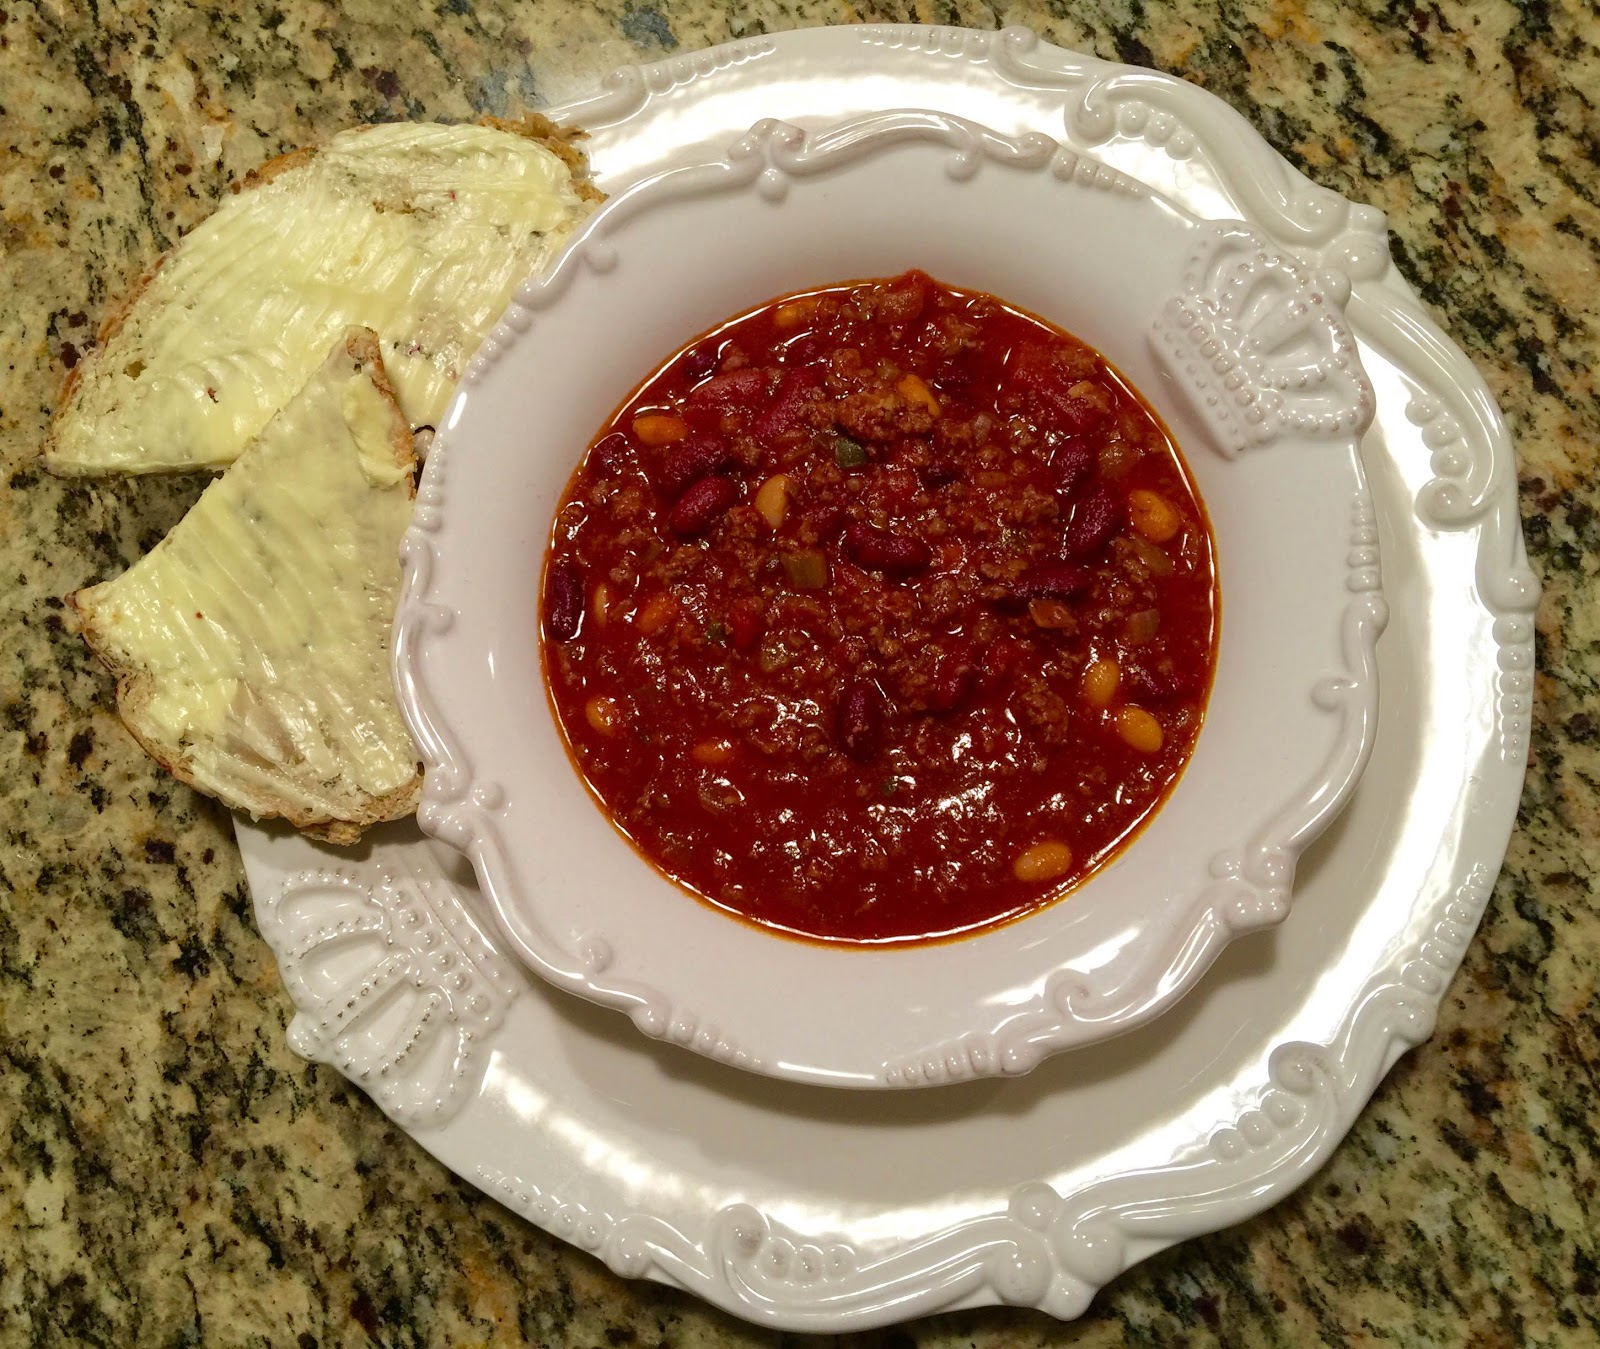 Kitchen Cheetahs Family Style Chili A Much Better Copy Cat Of Stagg Classic Chili Plus A Note About Nightshades